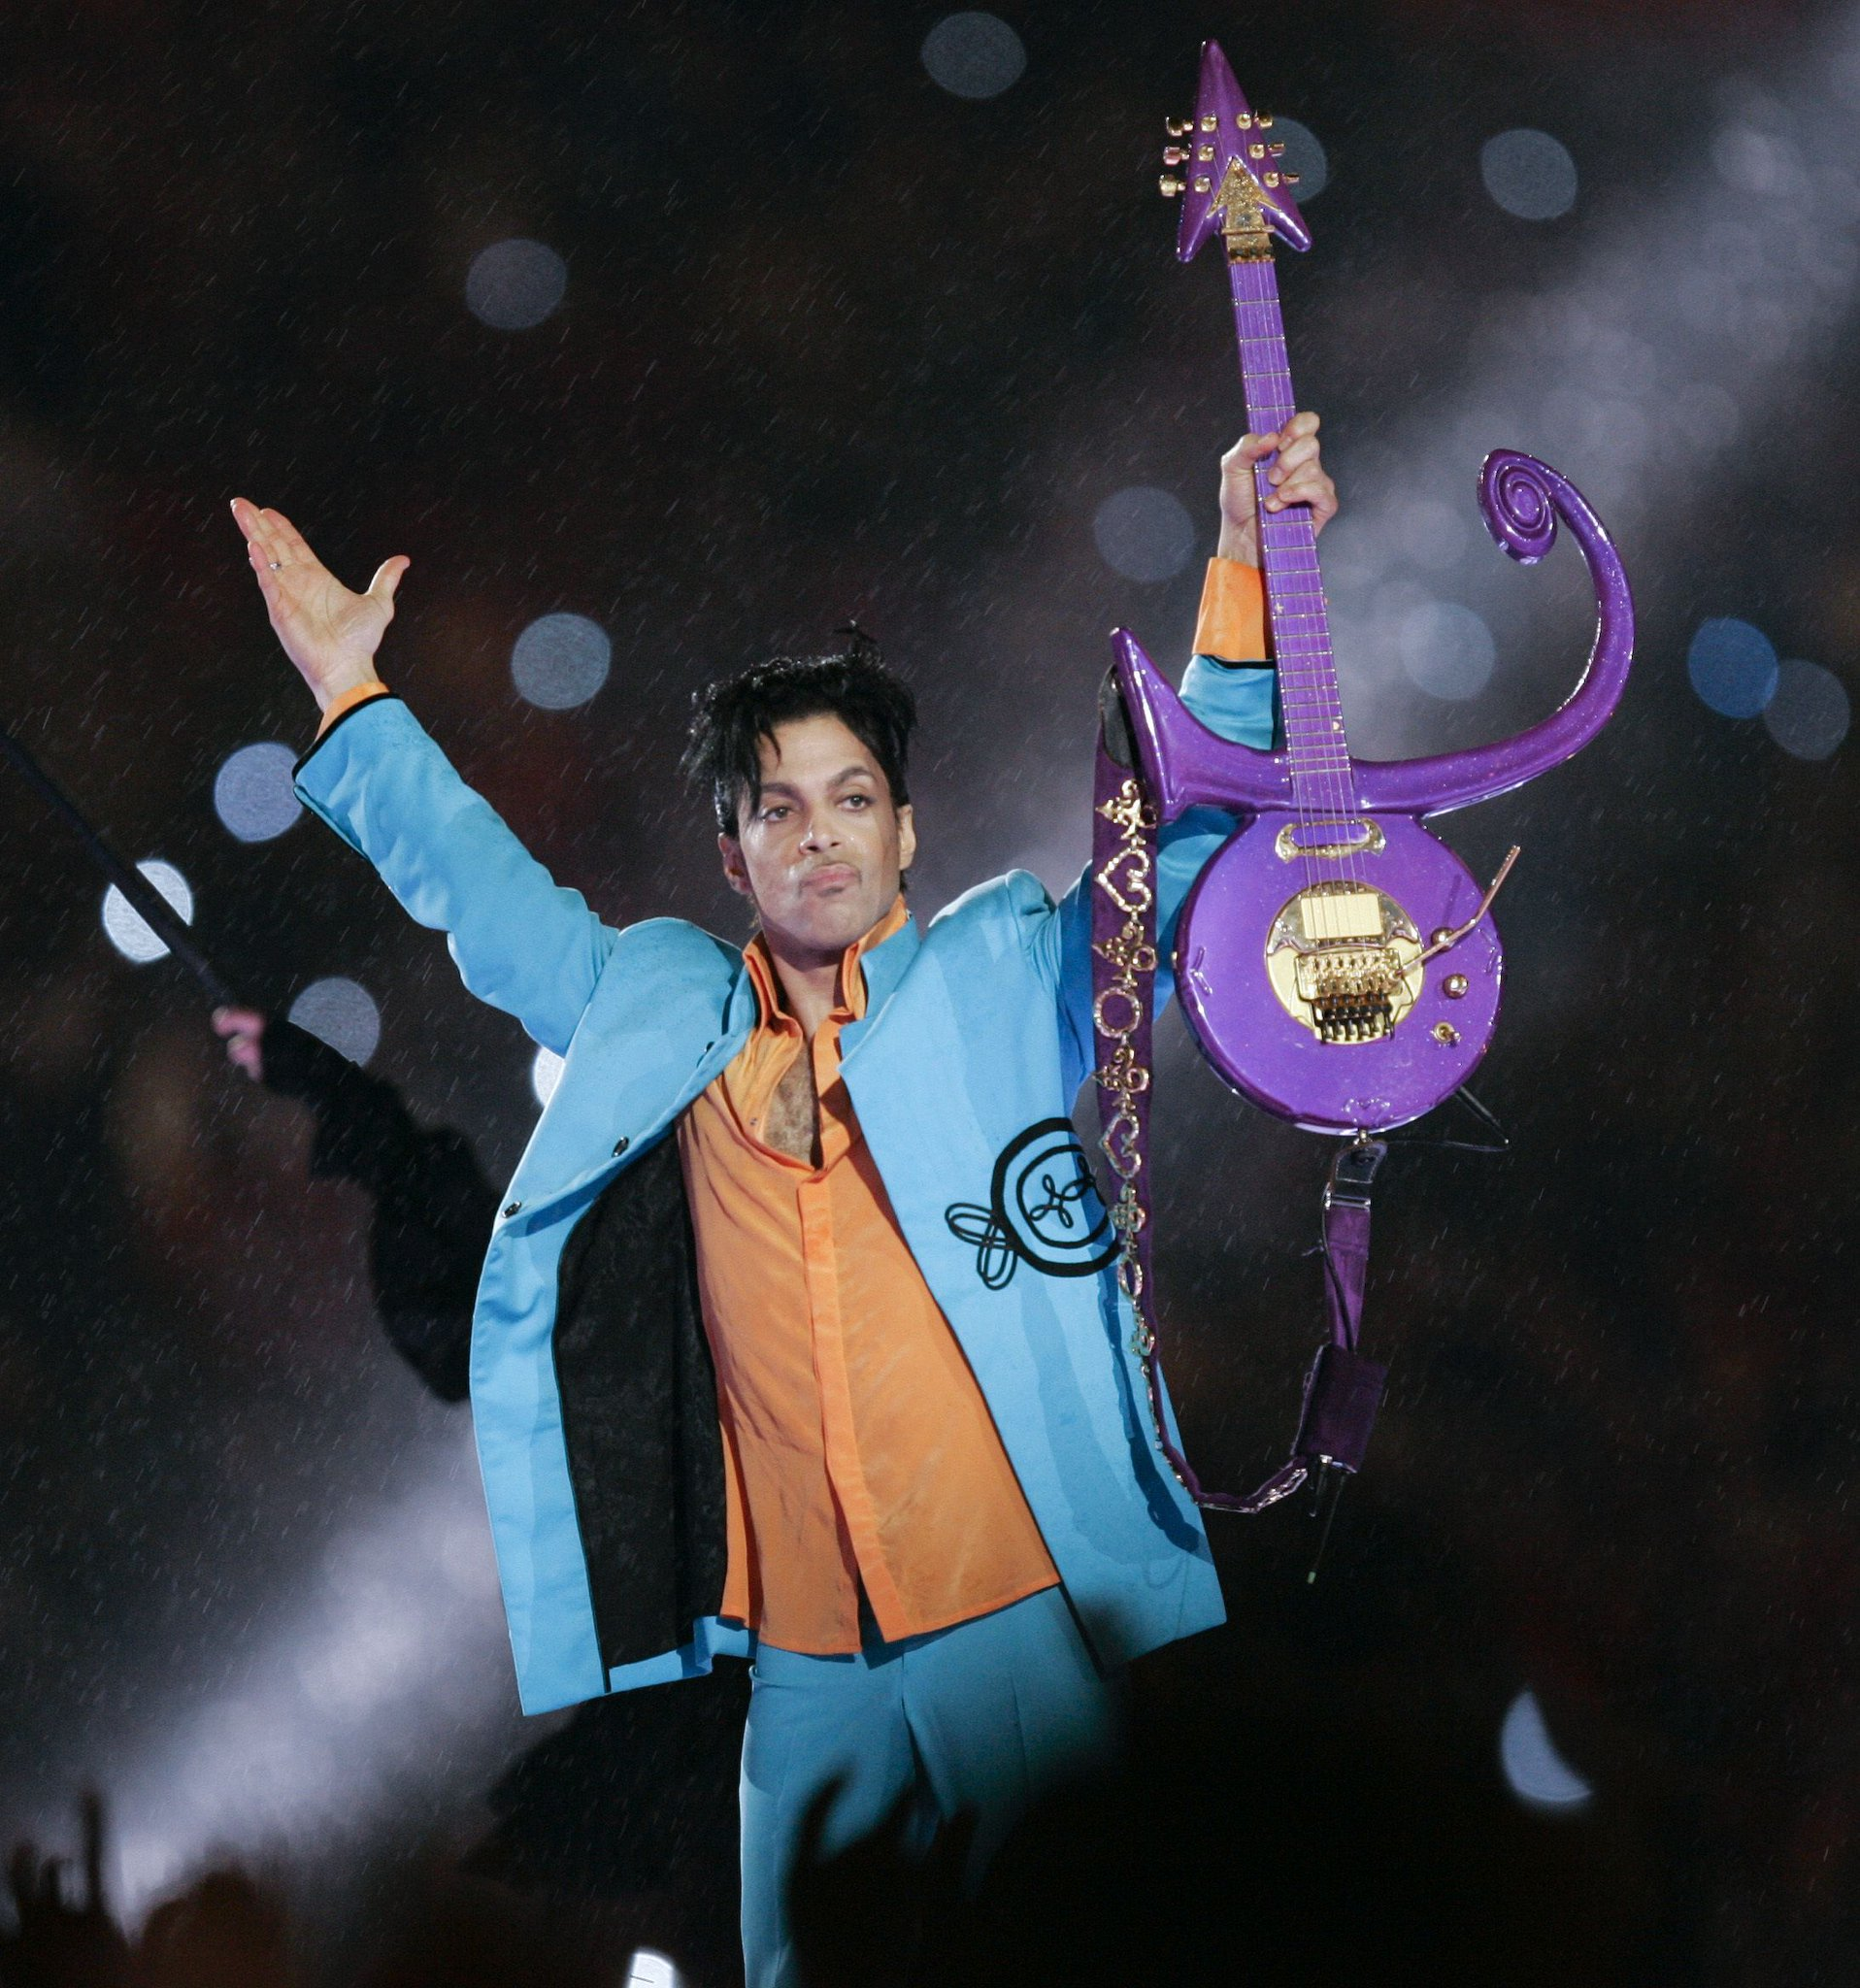 BREAKING NEWS: No criminal charges filed in Prince's 2016 death, prosecutor says https://t.co/ijS7JyizTR https://t.co/feaiLpBDrY